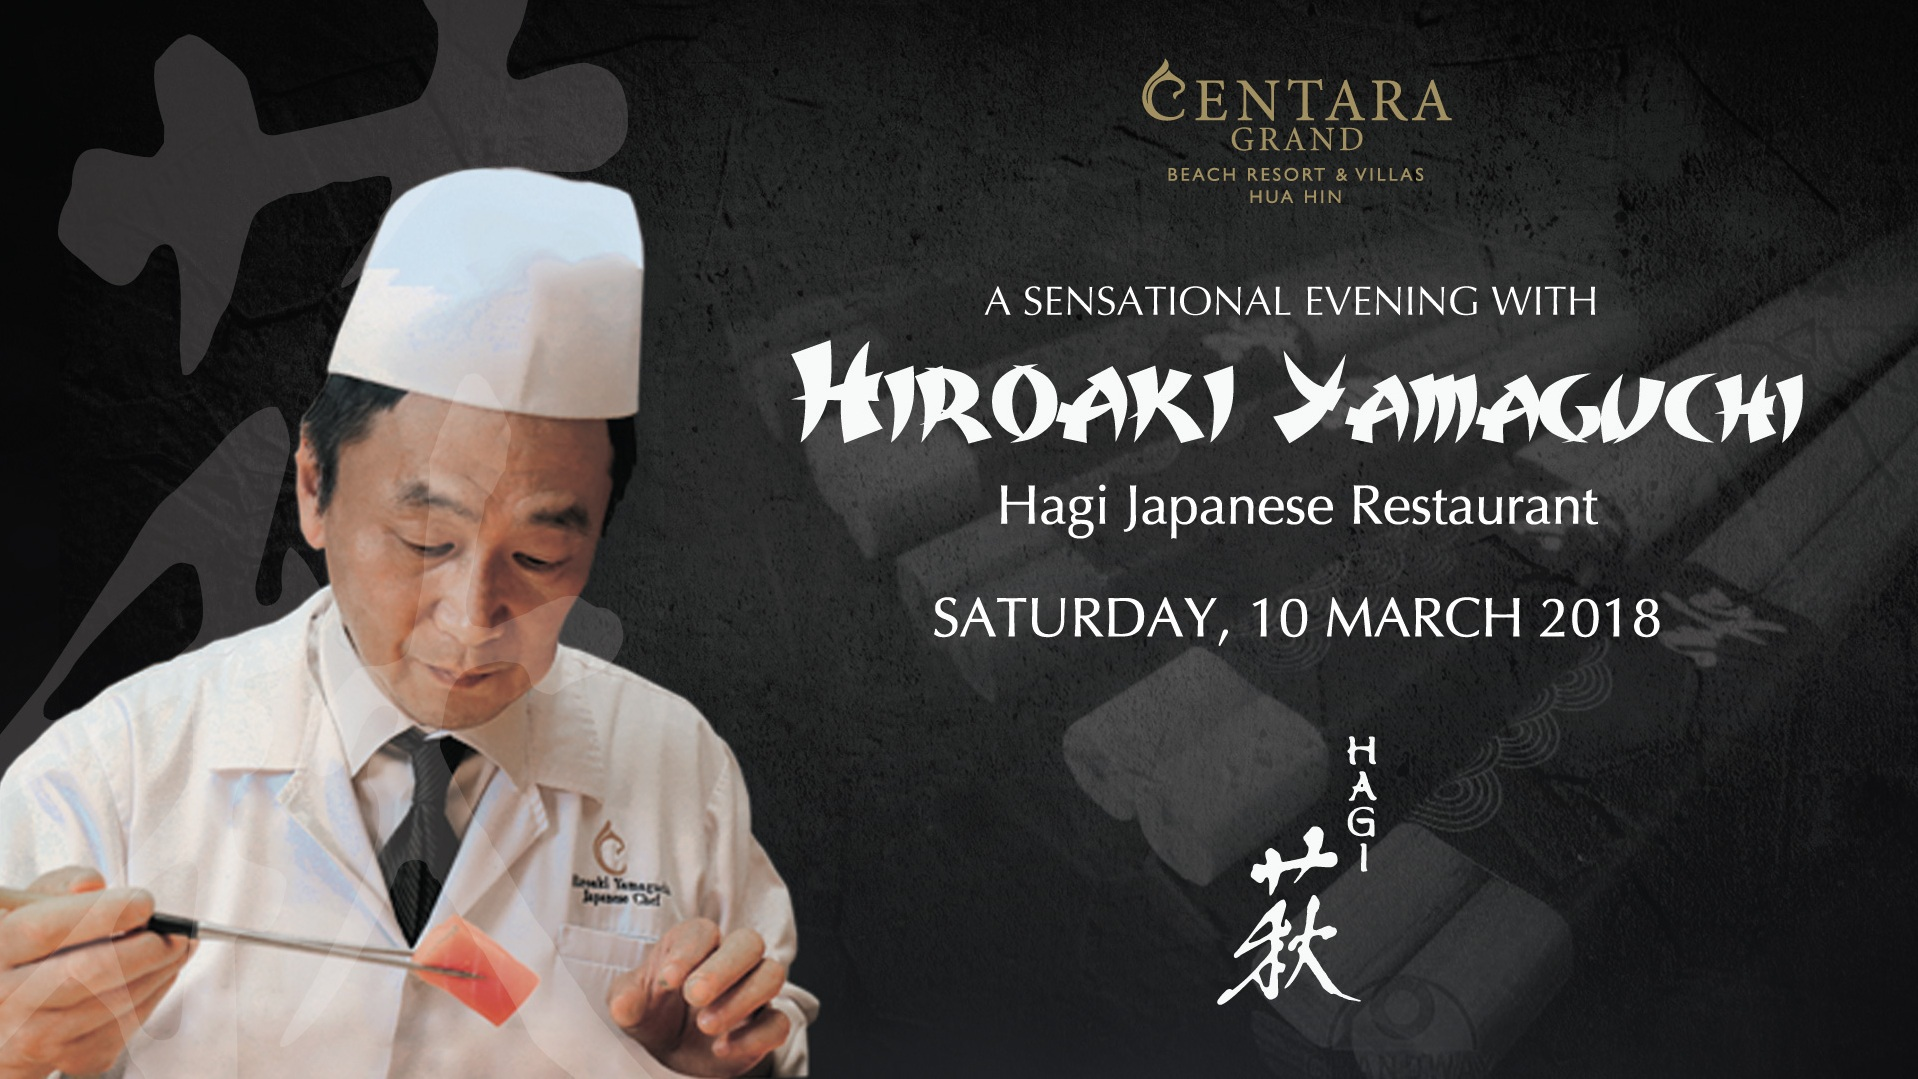 2. A SENSATIONAL EVENING WITH JAPANESE FLAIR AT CENTARA GRAND BEACH RESORT AND VILLAS HUA HIN 01